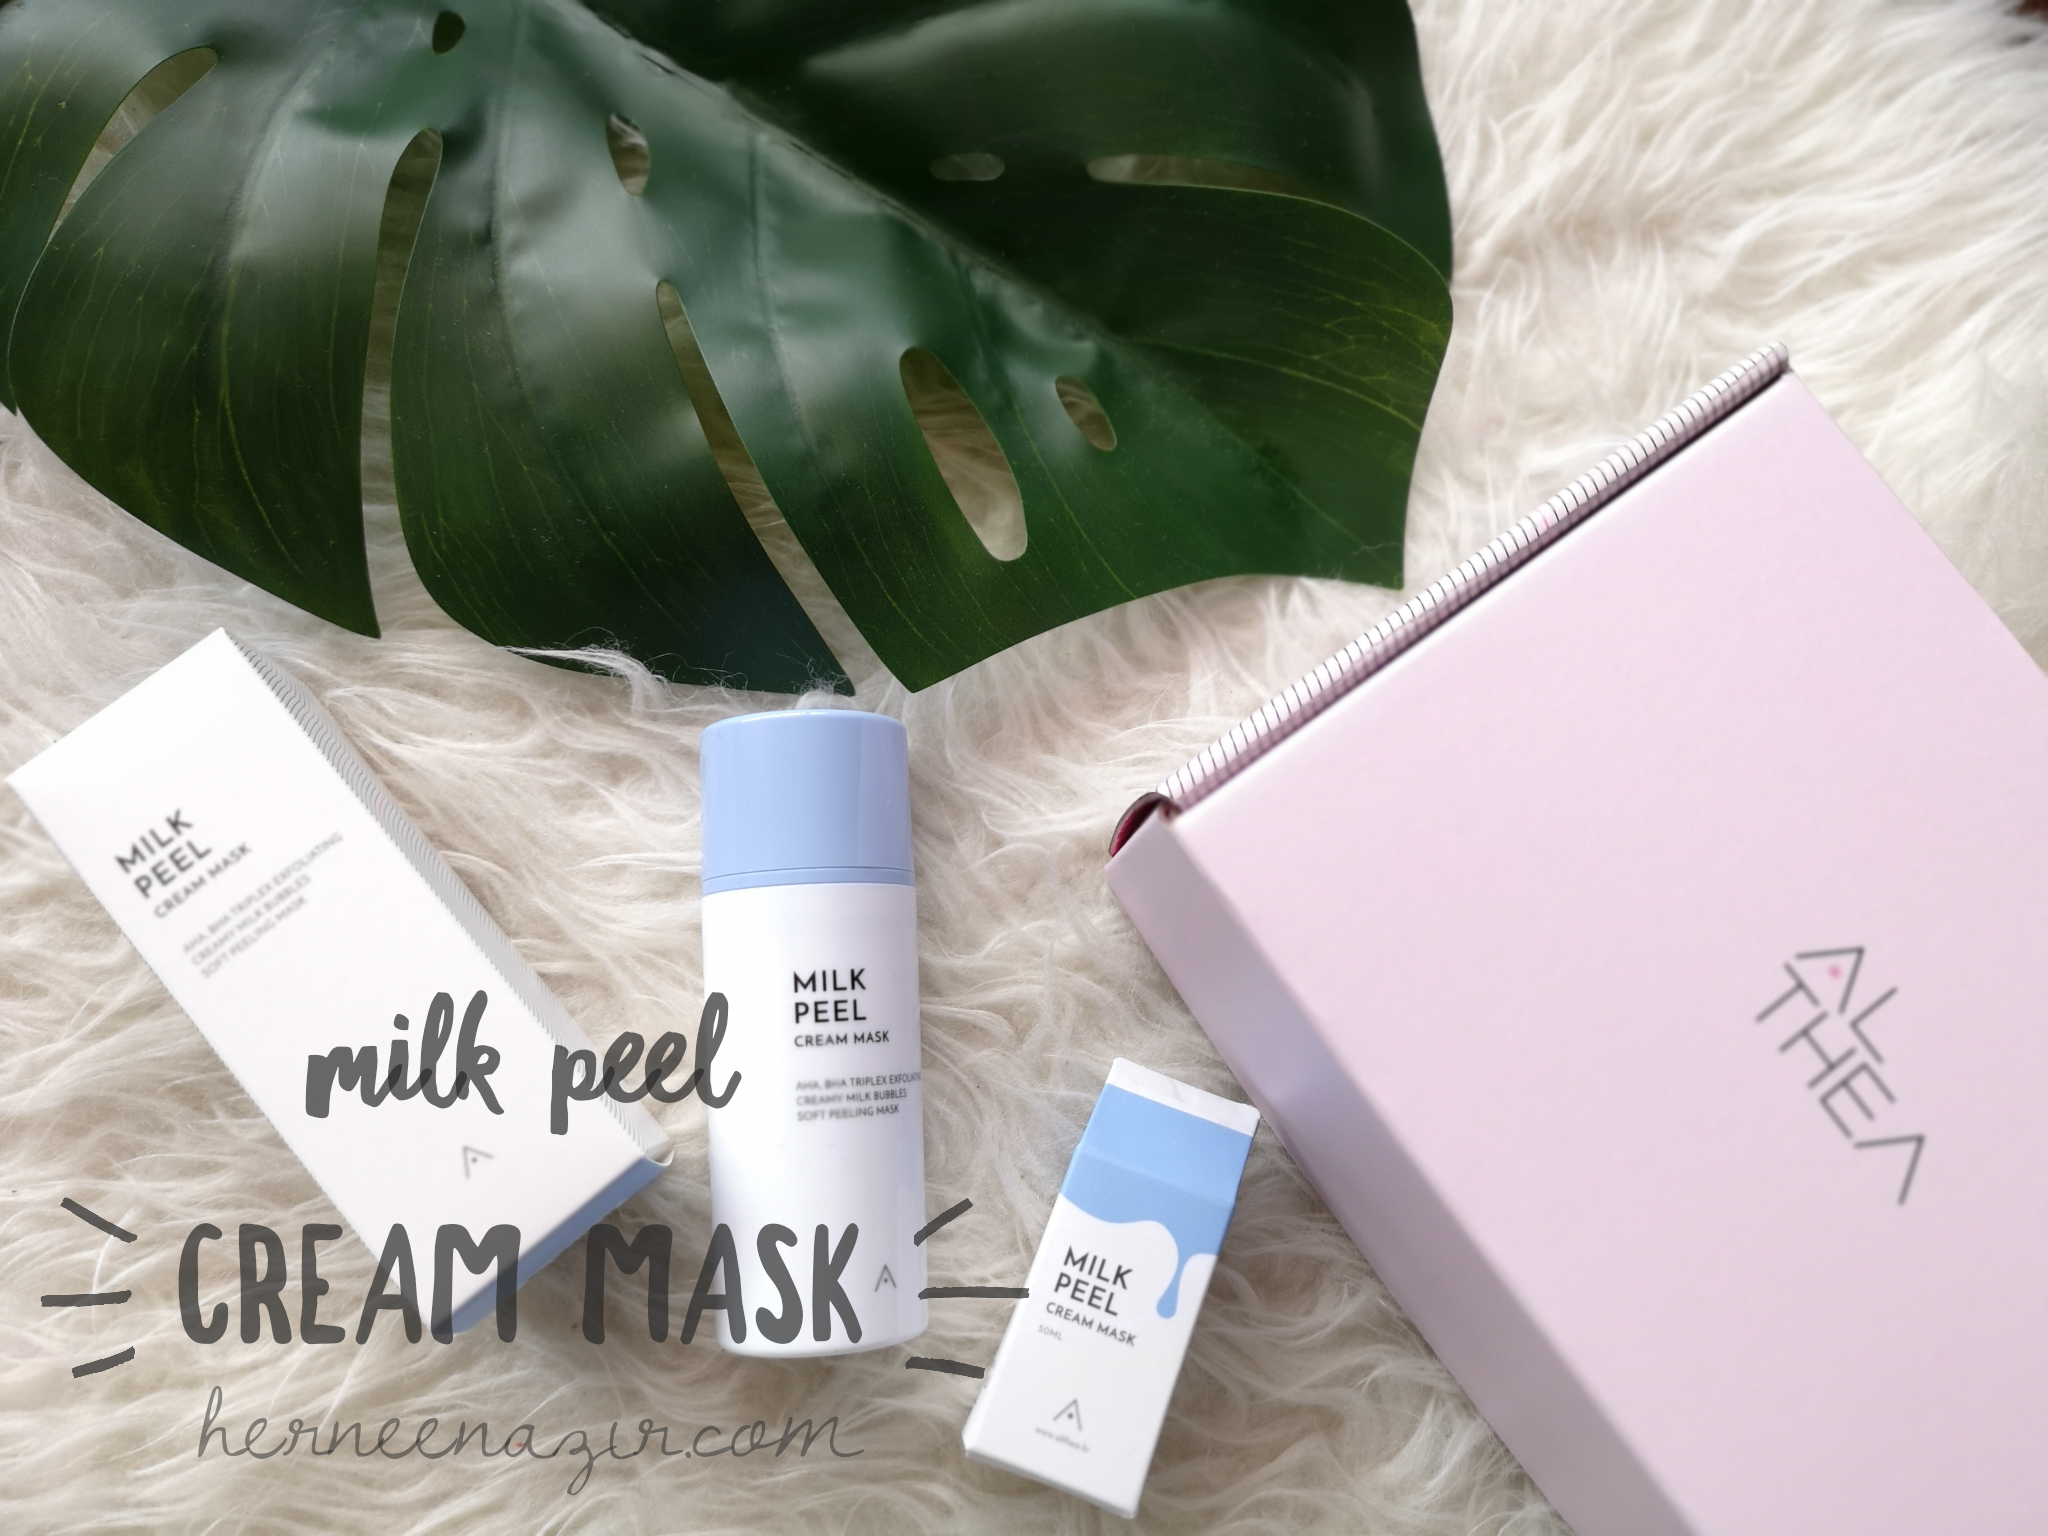 Manjakan Kulit Muka Dengan Althea Milk Peel Cream Mask